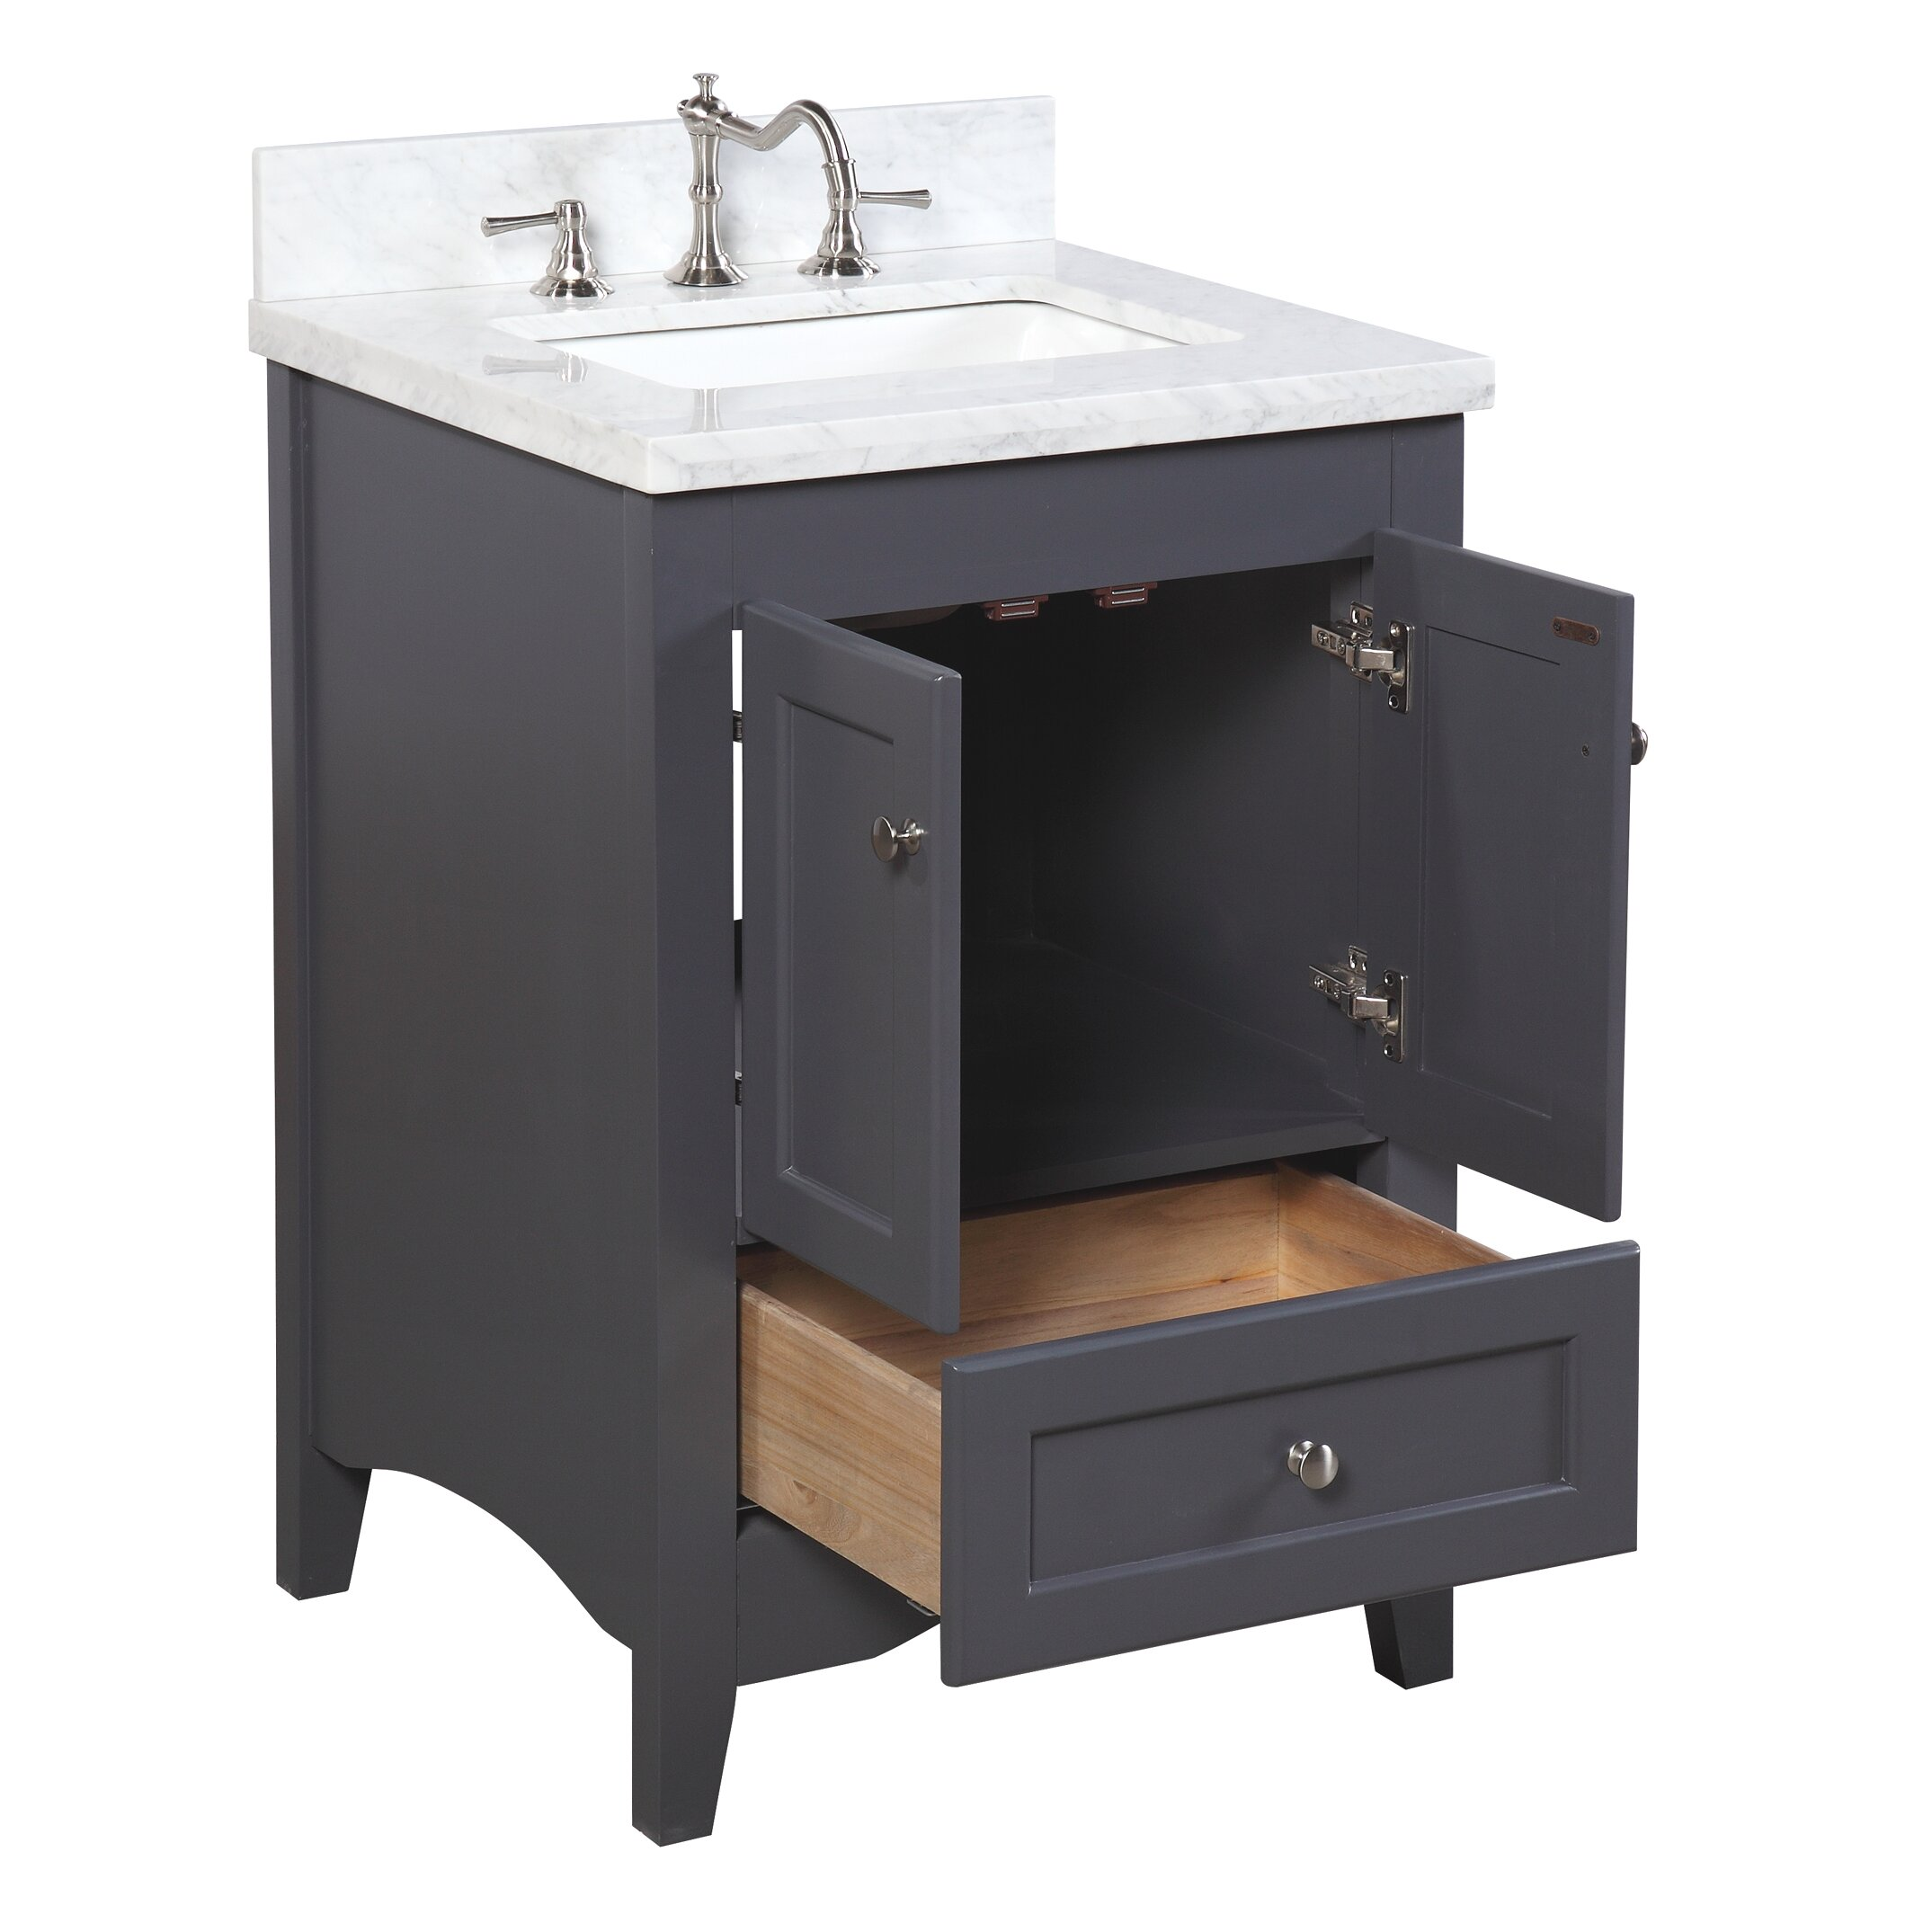 Kbc abbey 24 single bathroom vanity set reviews wayfair for Single bathroom vanity